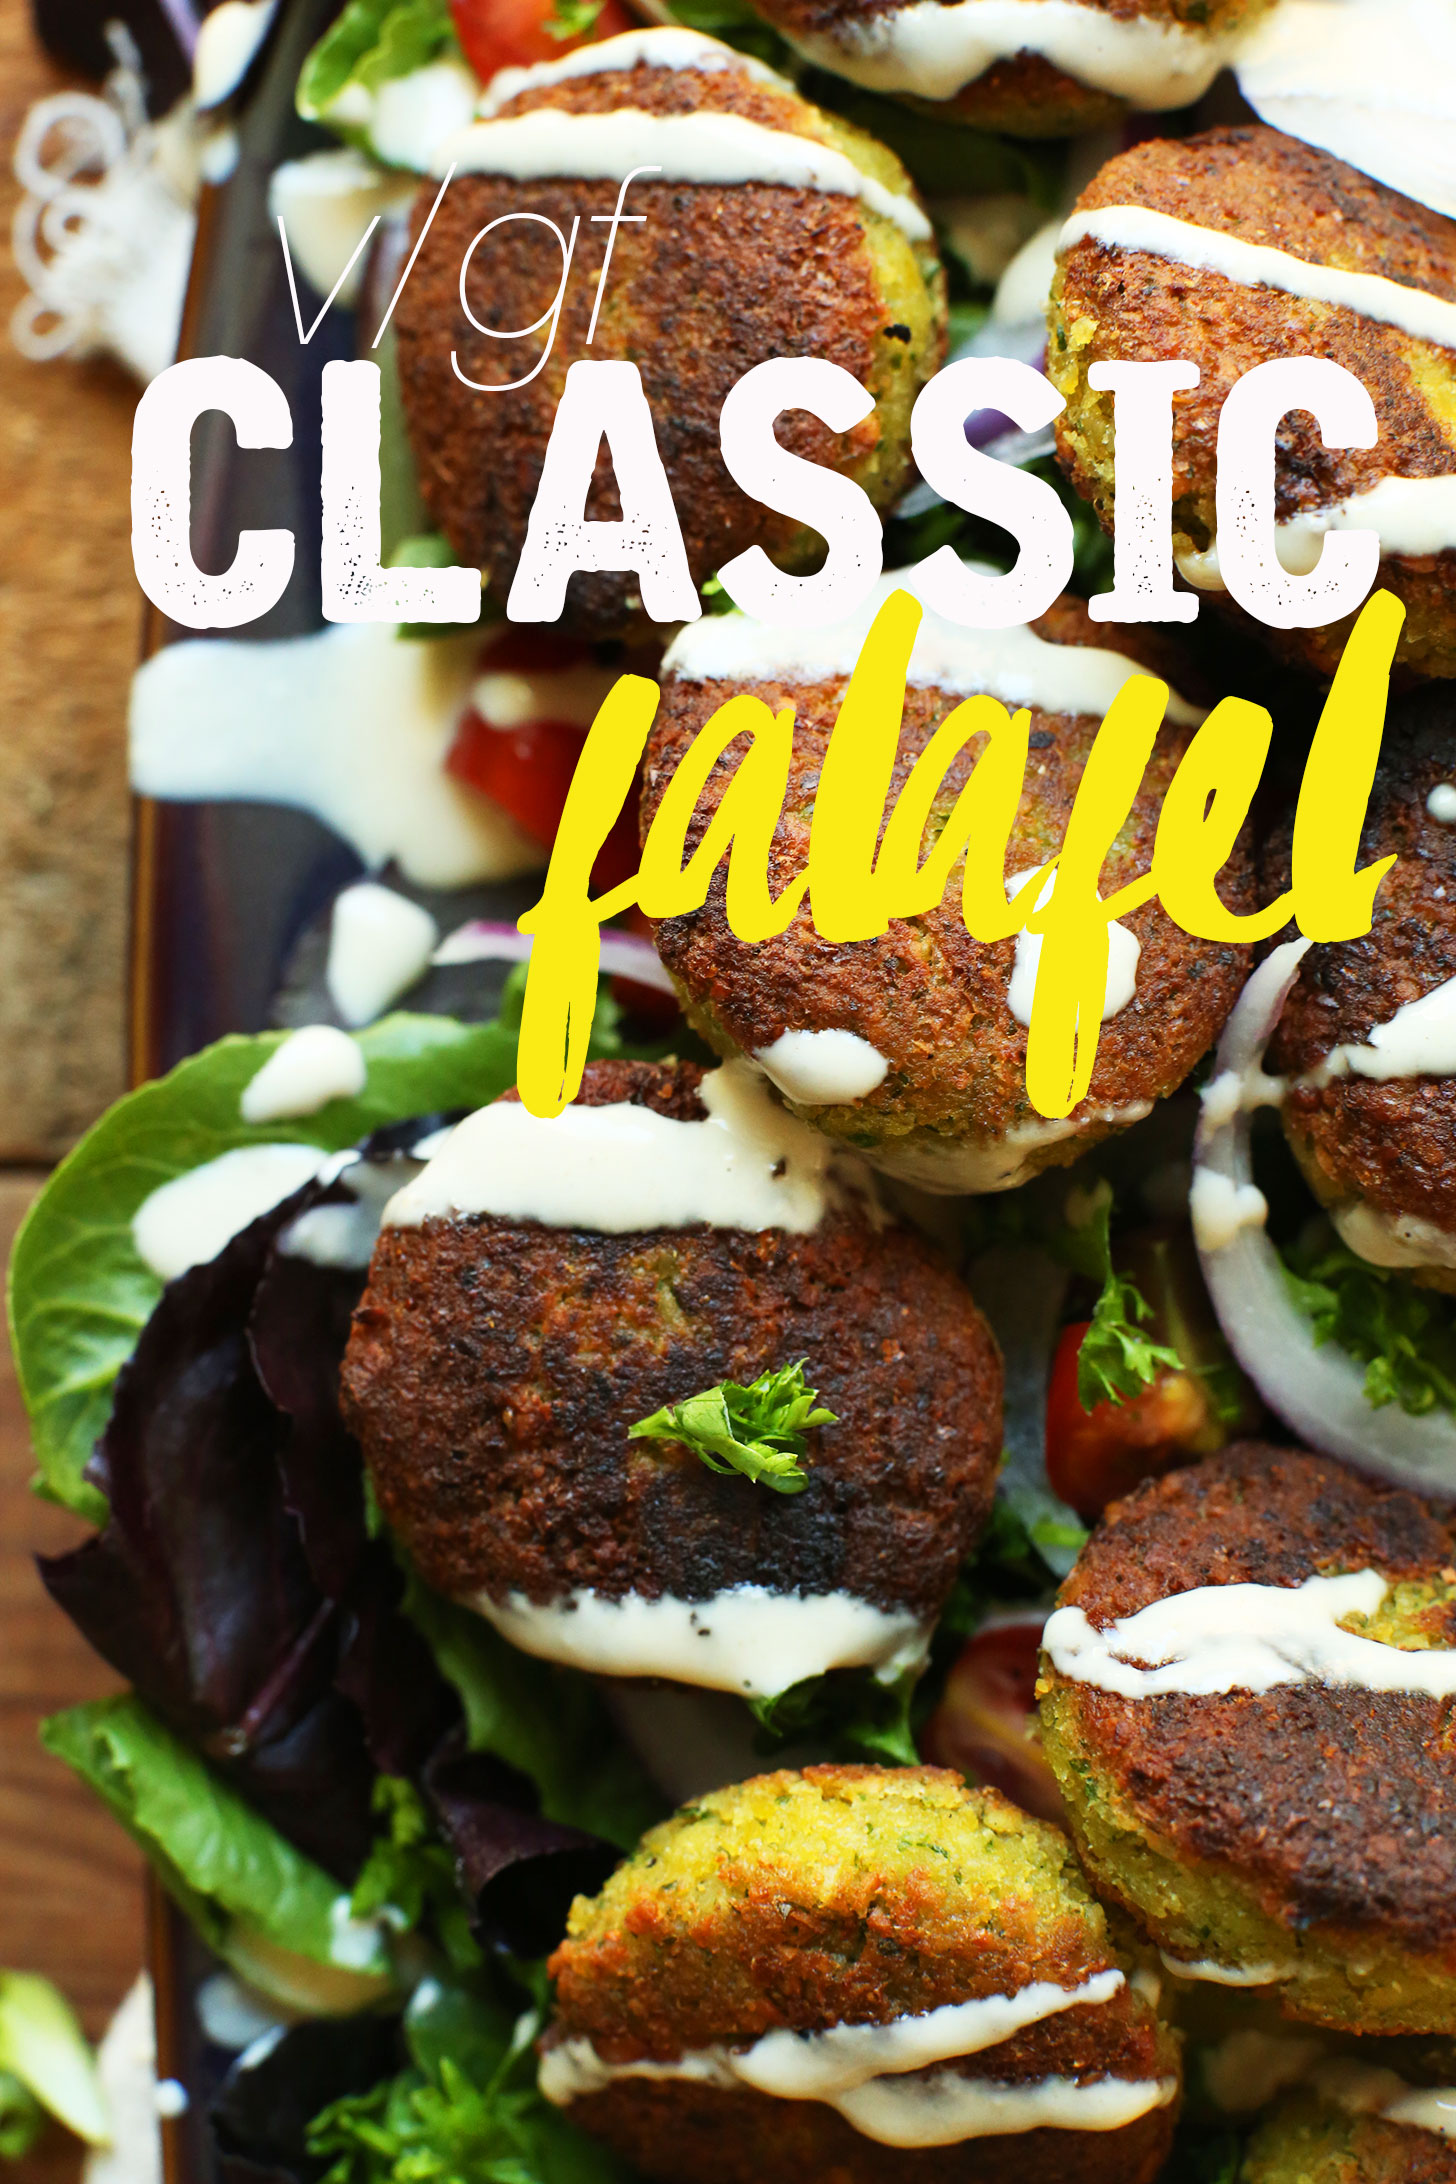 Our Classic Vegan Falafel recipe atop fresh lettuce leaves for a protein-packed lunch